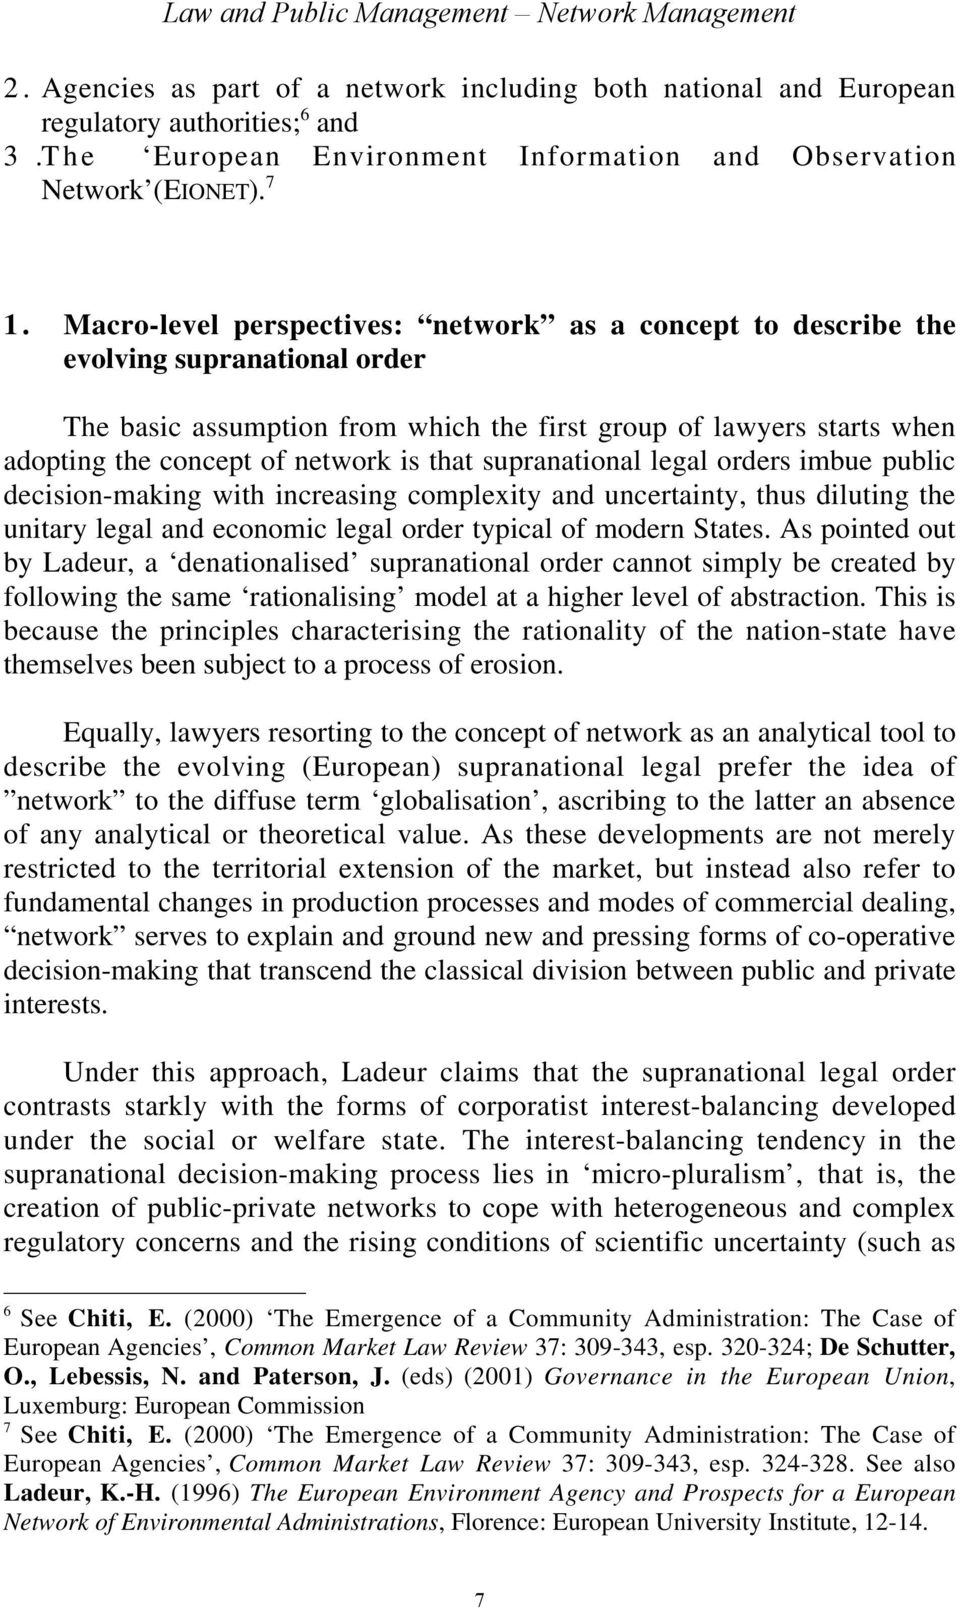 Macro-level perspectives: network as a concept to describe the evolving supranational order The basic assumption from which the first group of lawyers starts when adopting the concept of network is